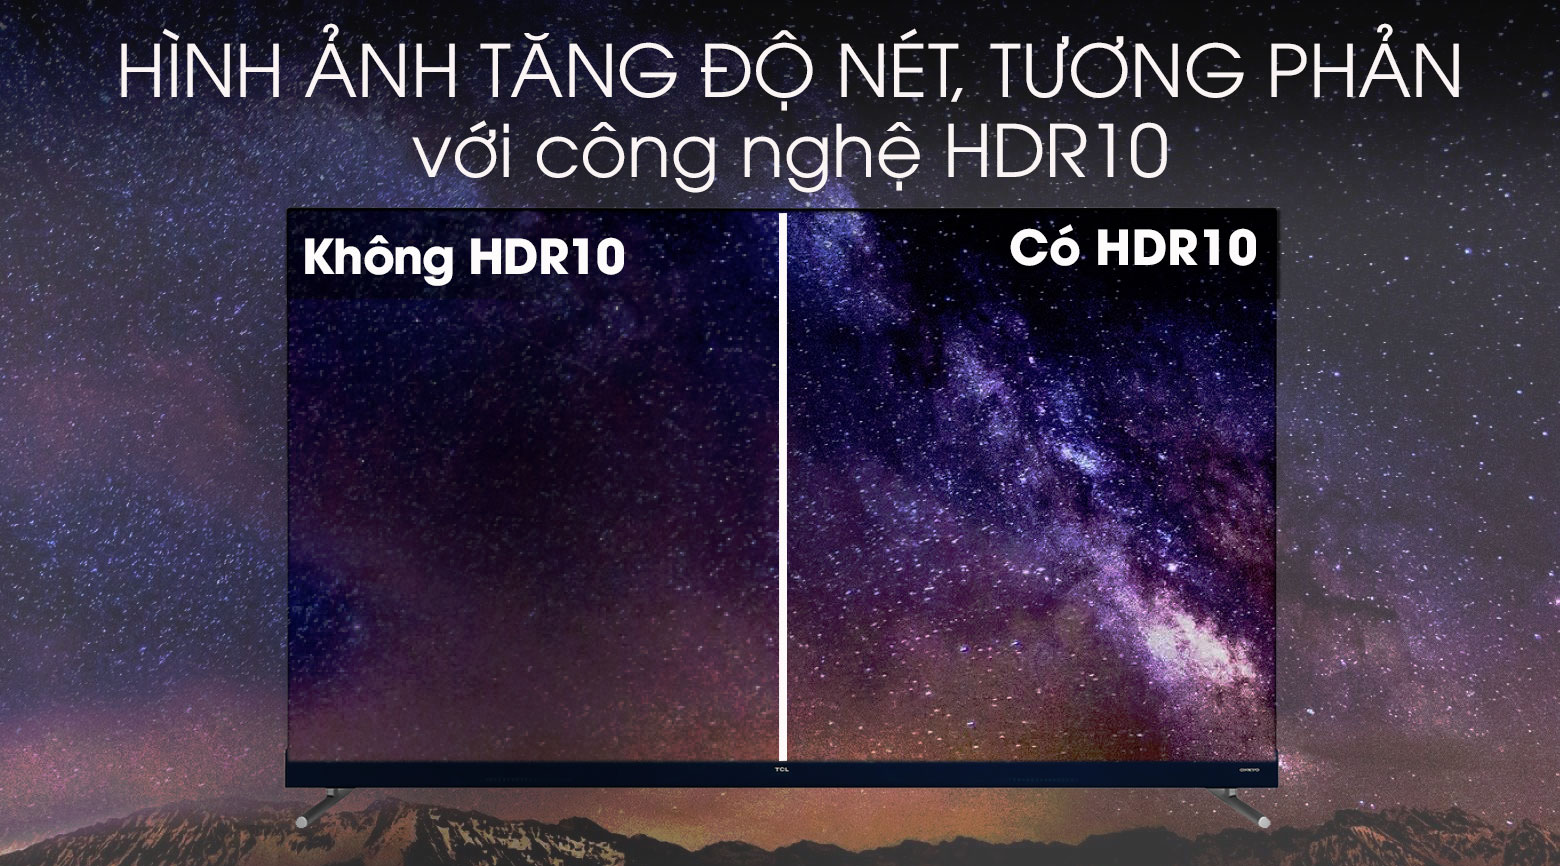 Android Tivi TCL 4K 55 inch L55C8 - hdr10